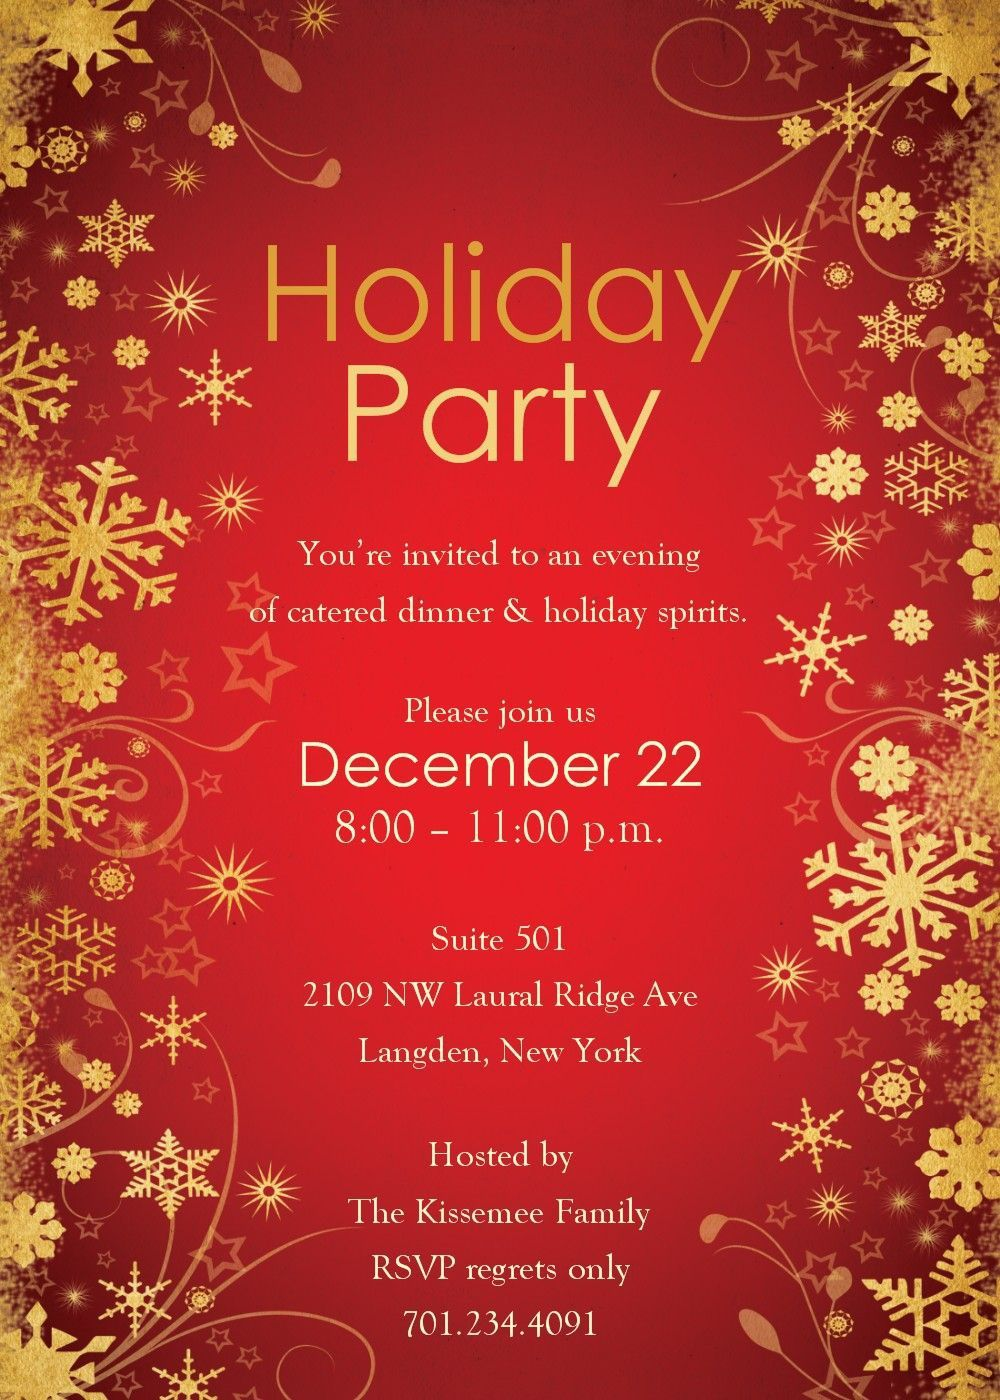 005 Shocking Free Holiday Party Invitation Template For Word Sample Full